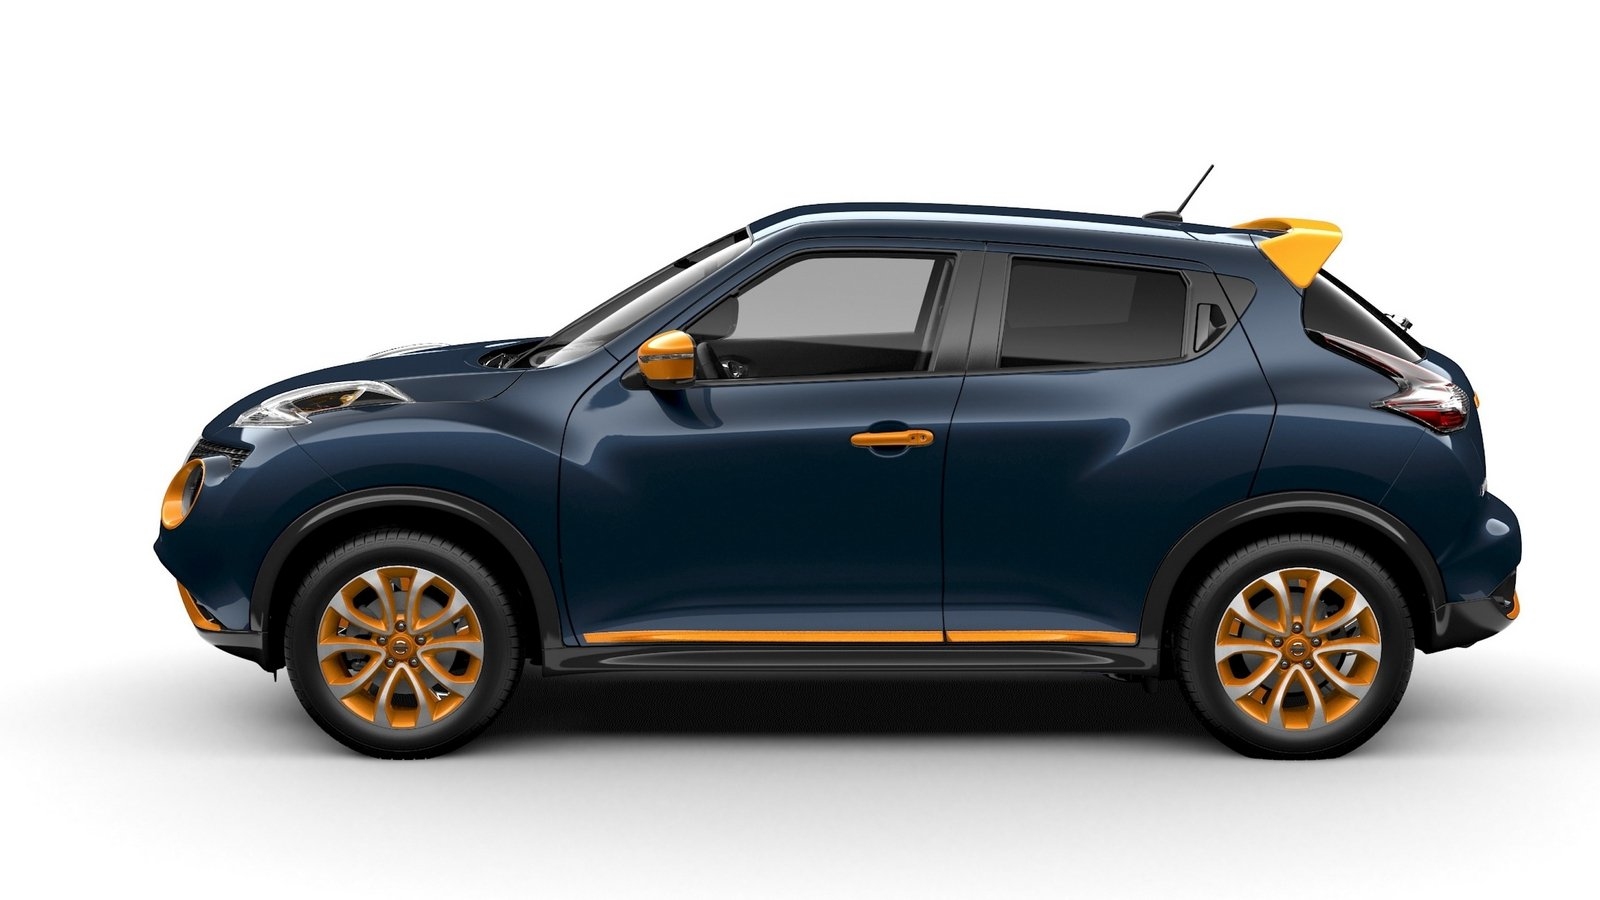 2015 nissan juke color studio picture 579119 car. Black Bedroom Furniture Sets. Home Design Ideas